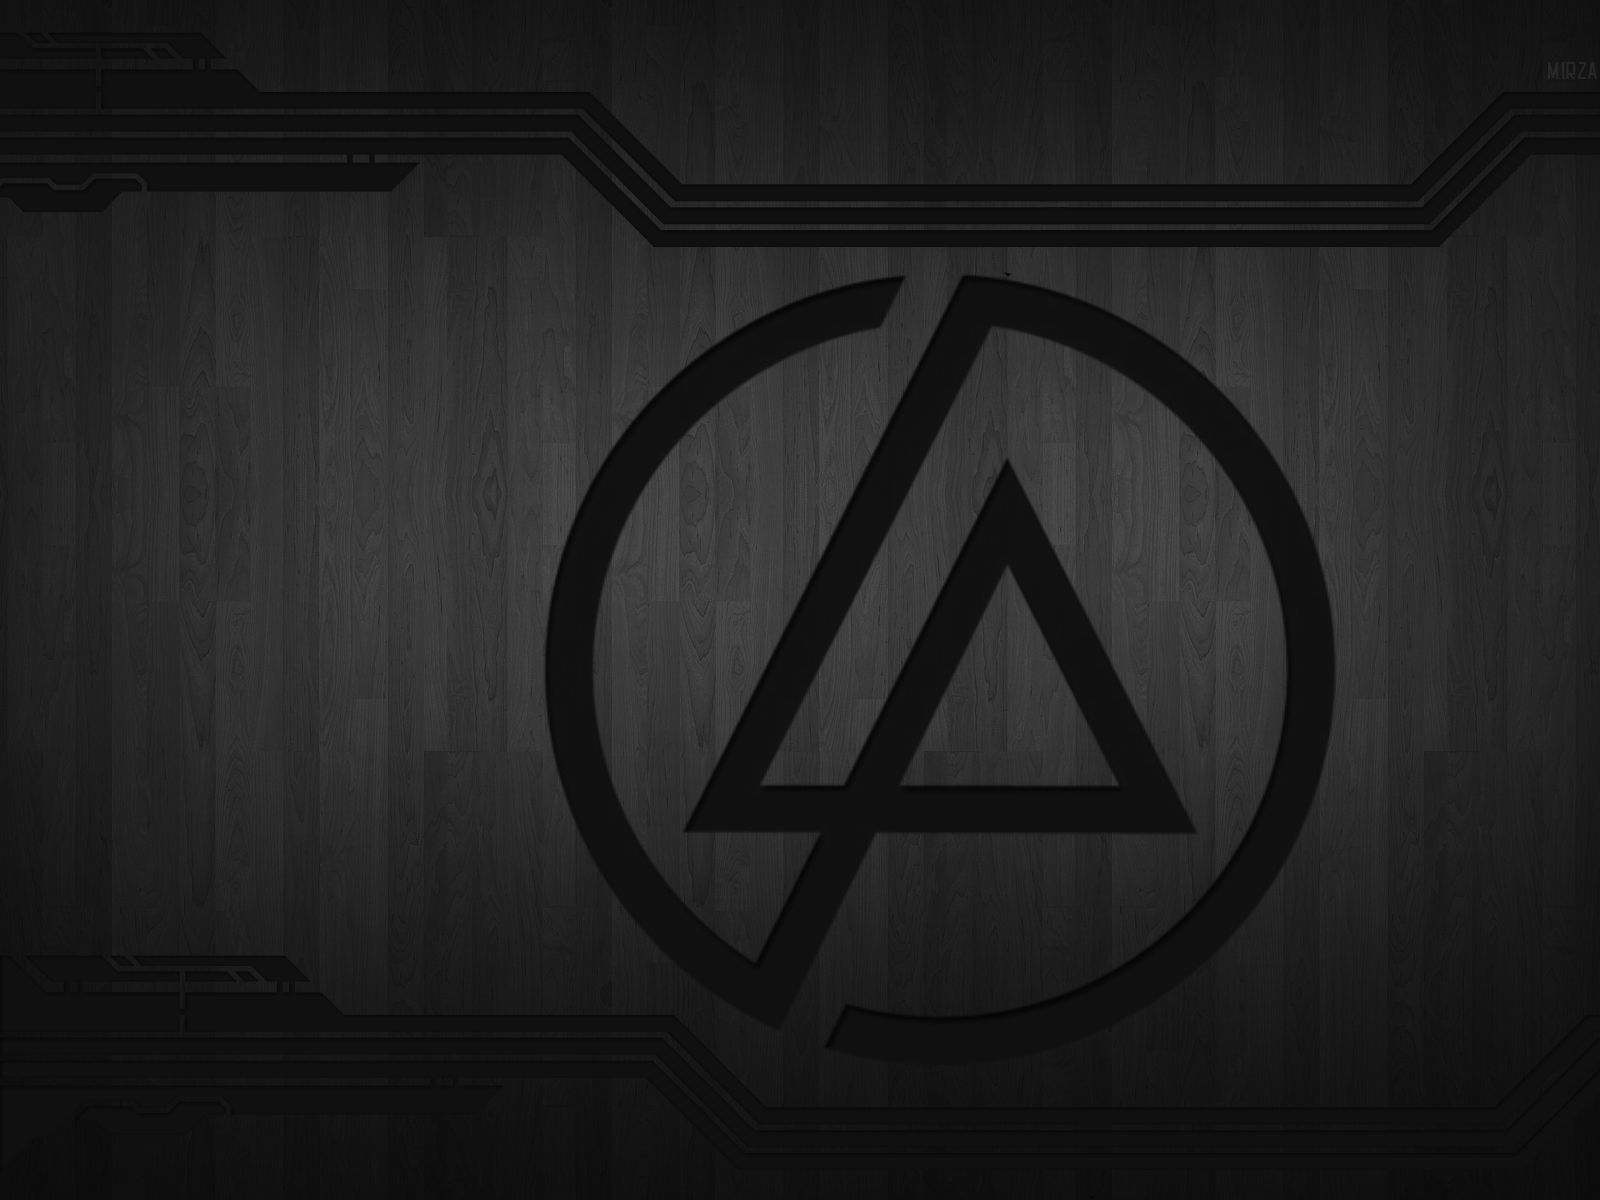 wallpaper linkin park 2014